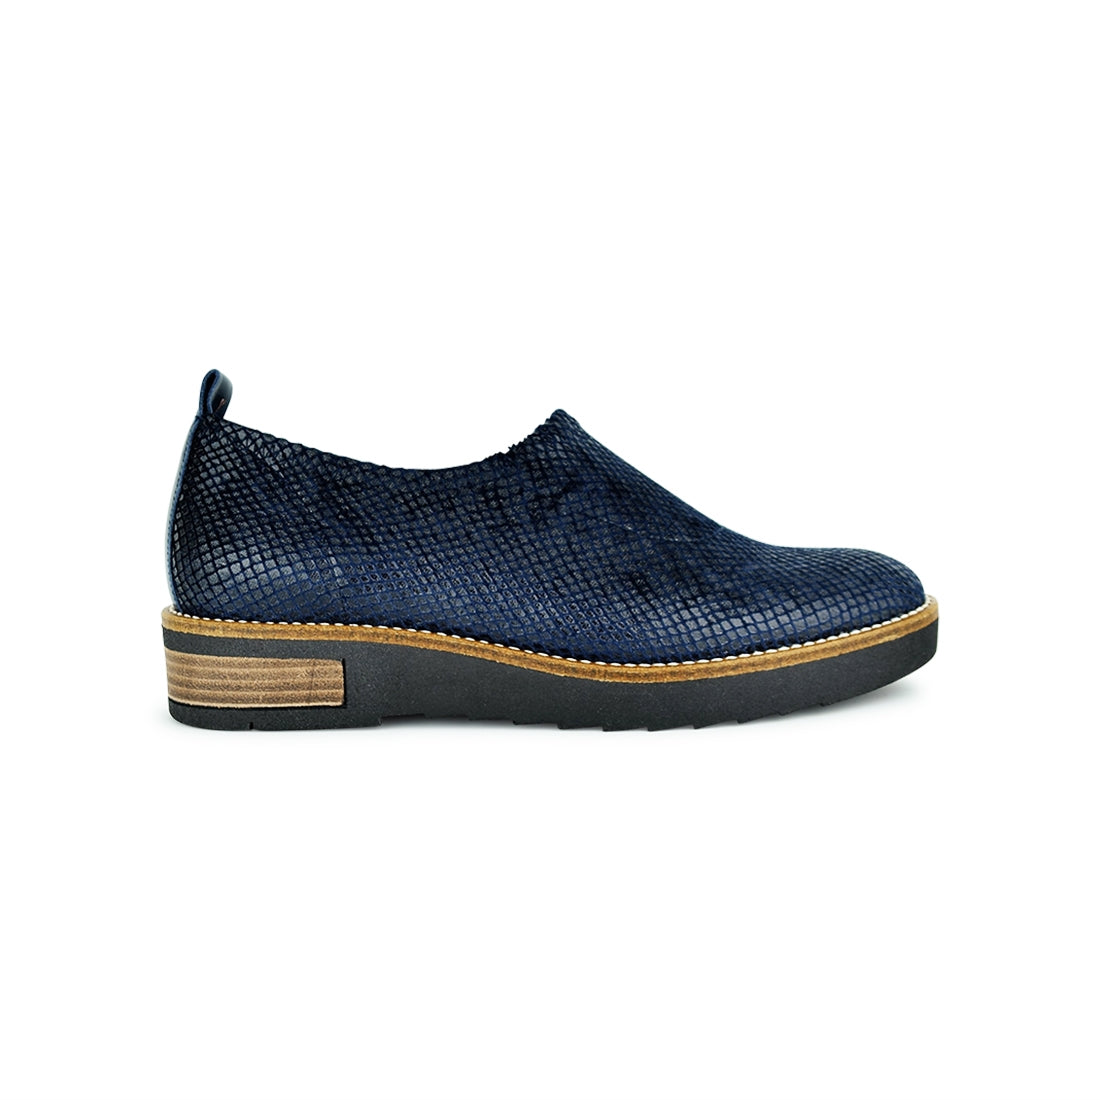 PITALO - Torretti Closed Shoe Navy Snake